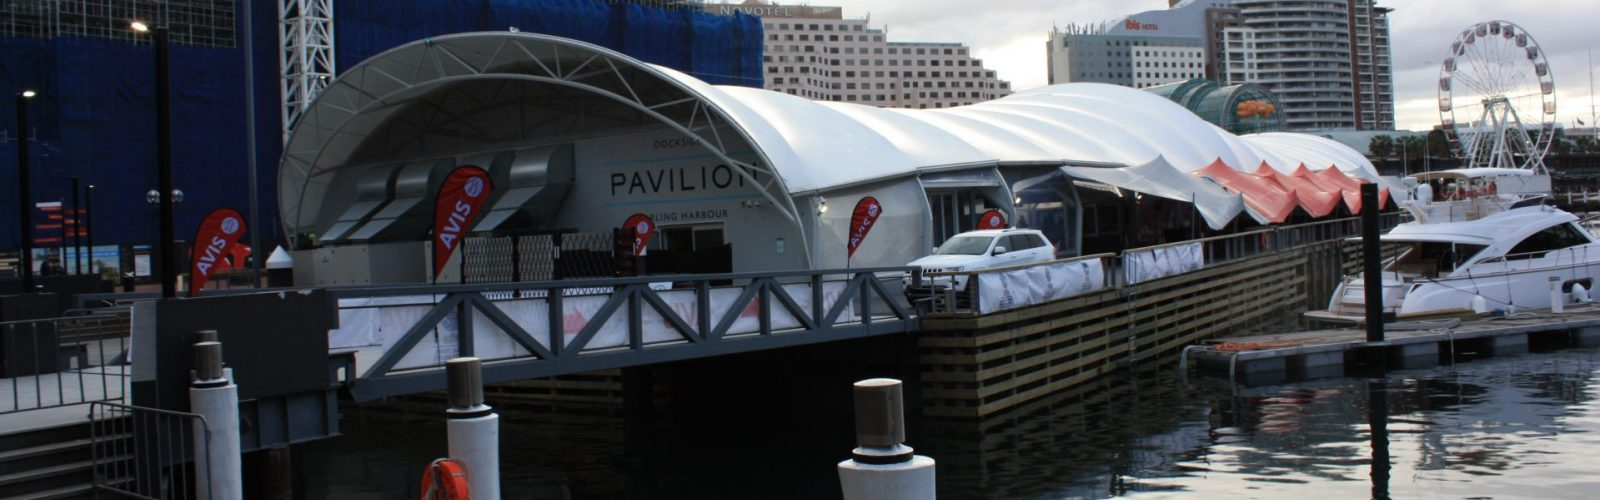 Dockside Events Pavilion Pontoon - Header Image